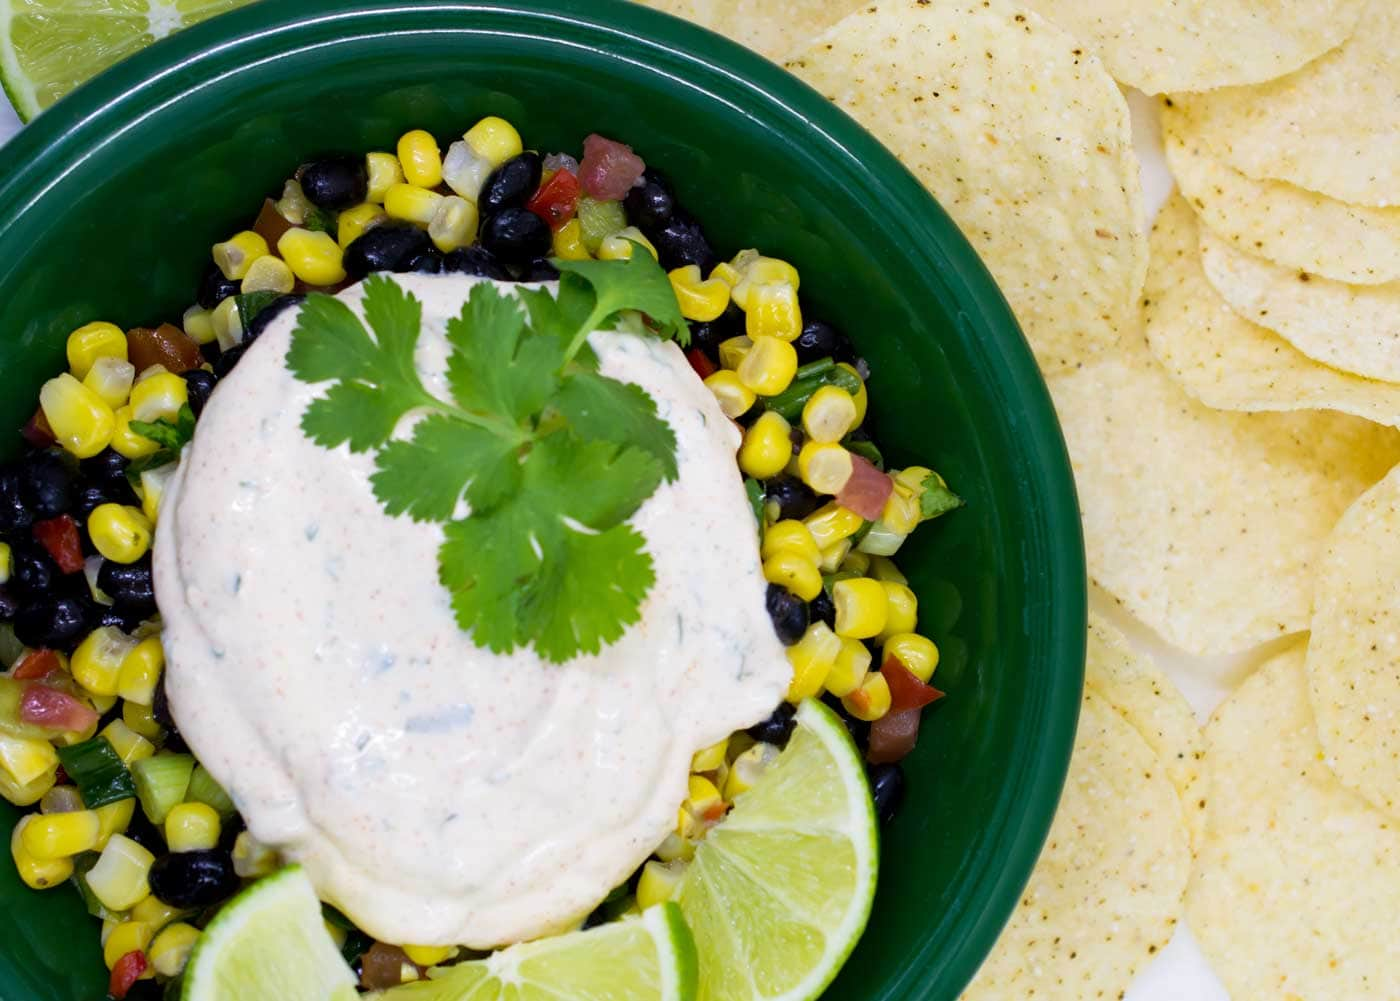 Chipotle Lime Crema with tortilla chips